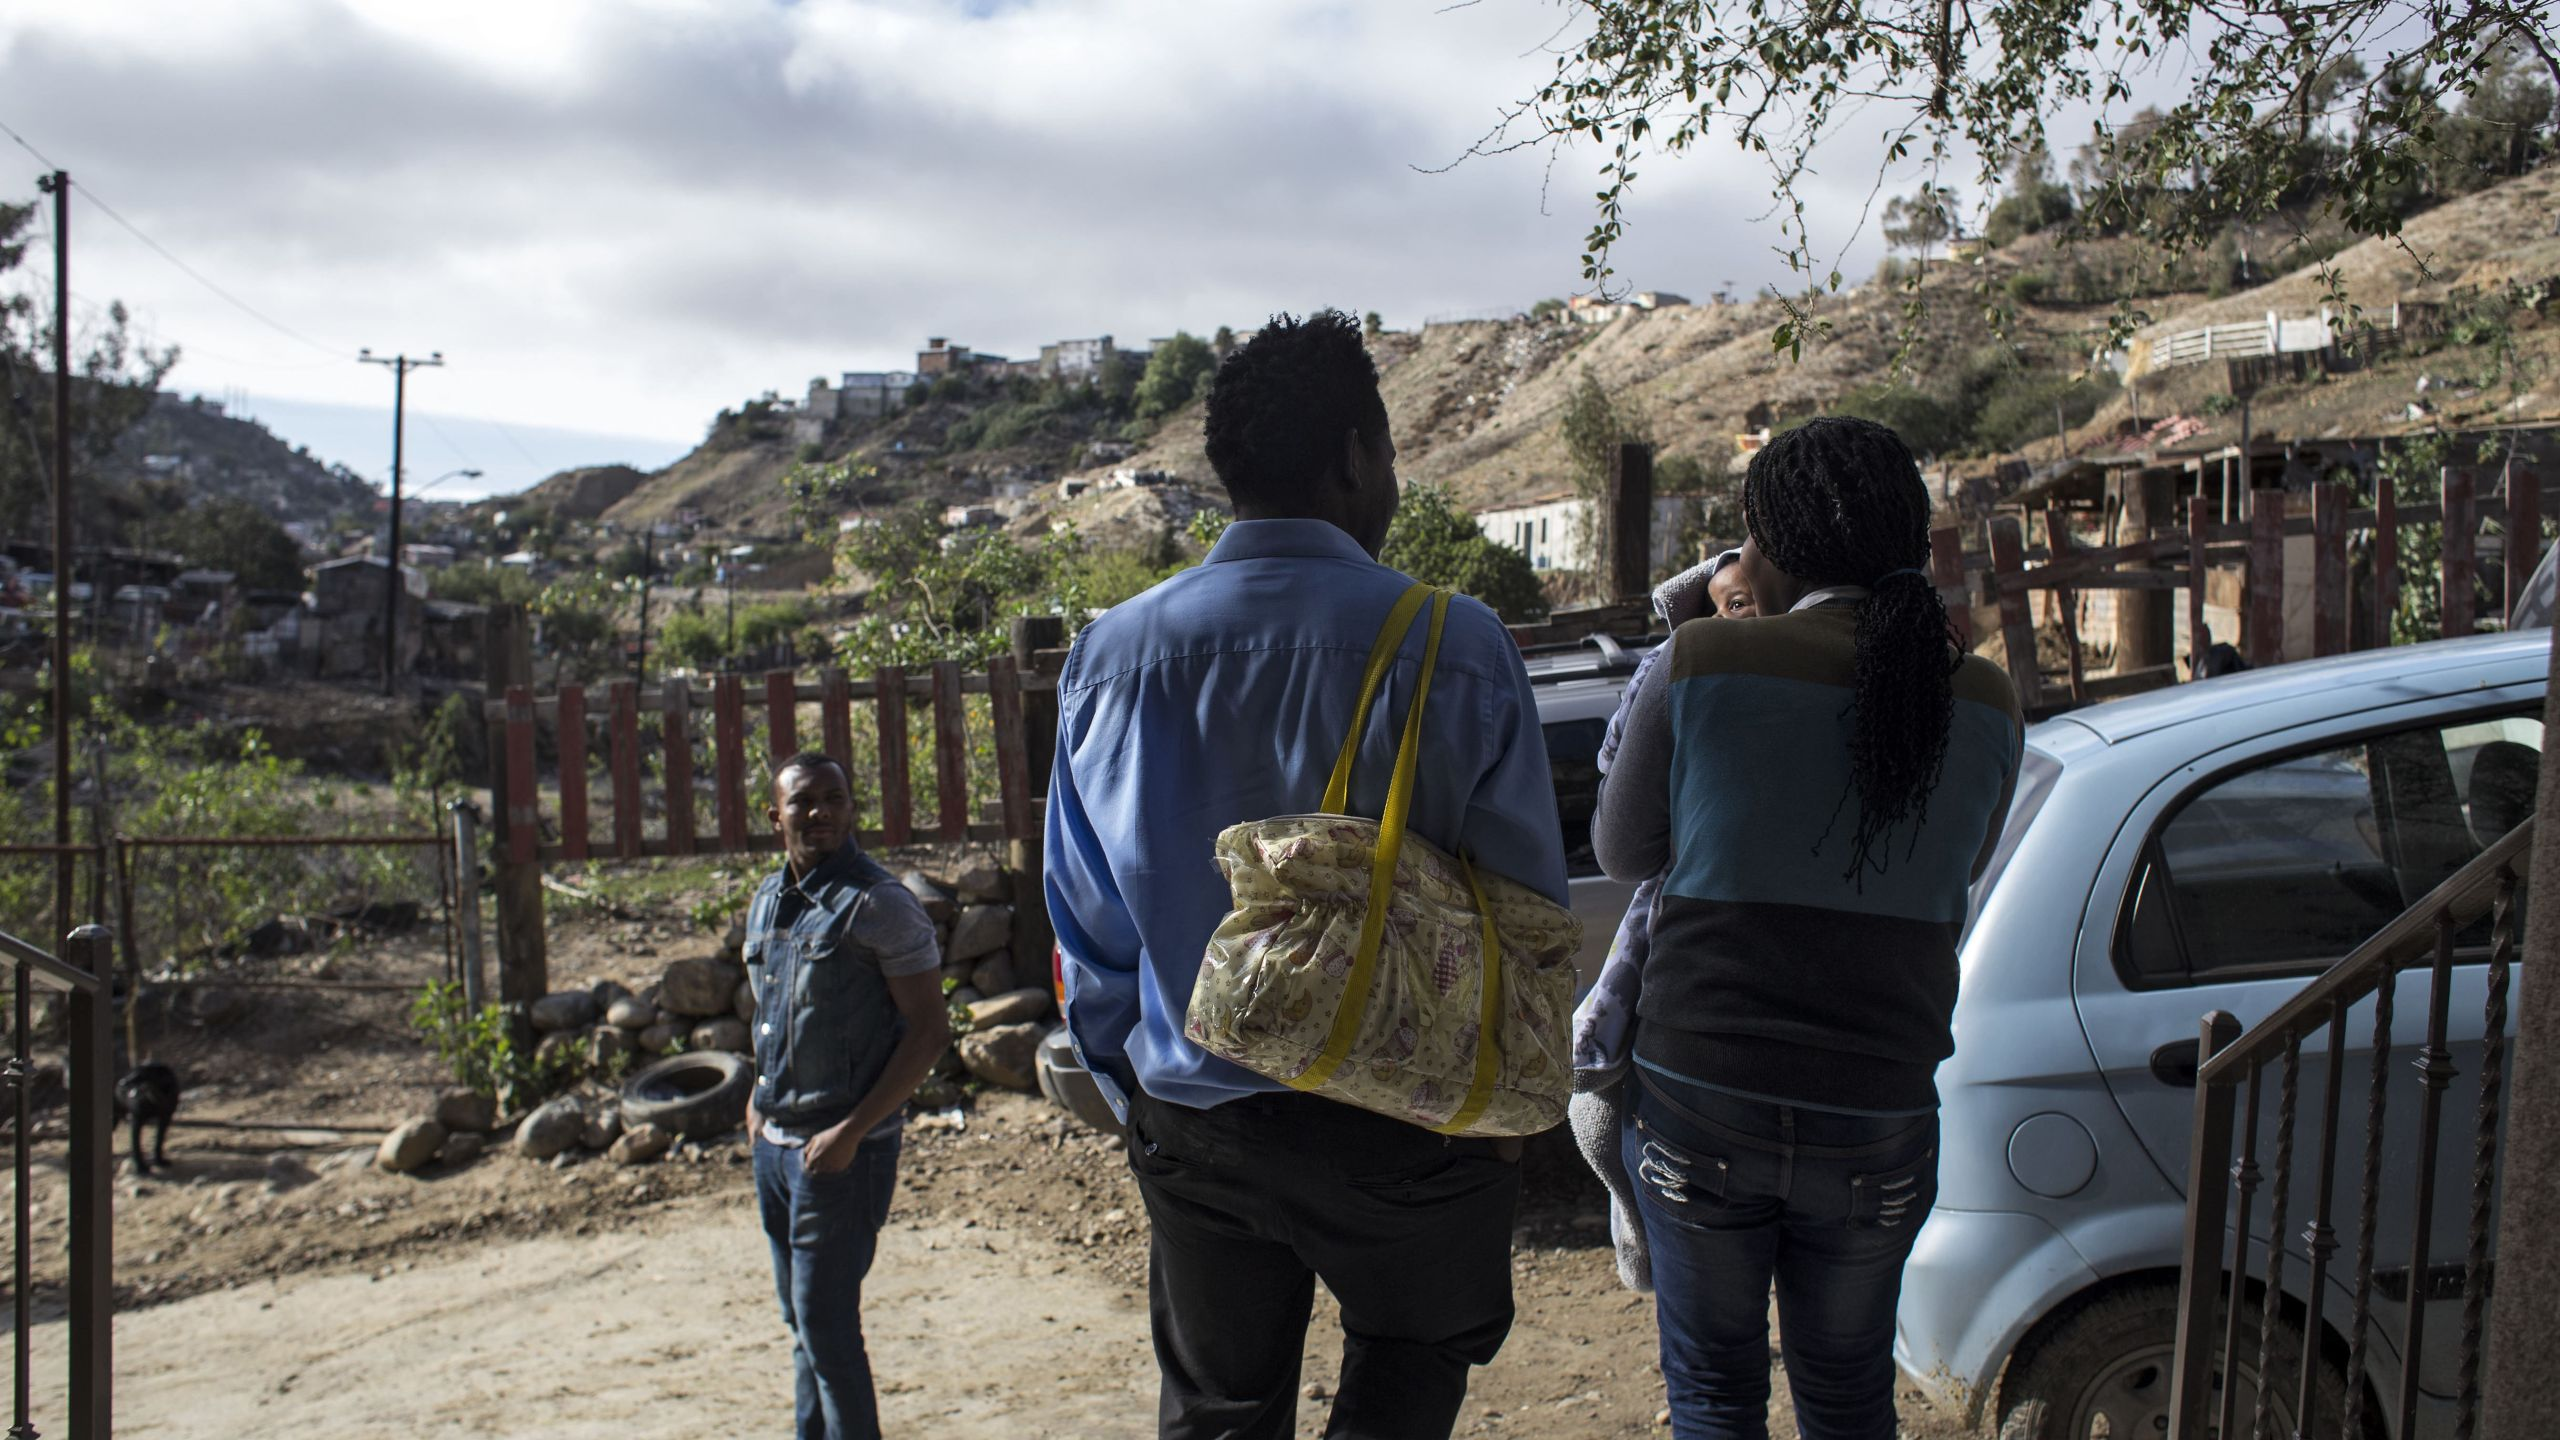 A Haitian family leaves after a Sunday mass at the Embajadores de Jesus church, in the suburbs of Tijuana, Mexico on March 11, 2018. (Credit: GUILLERMO ARIAS/AFP/Getty Images)